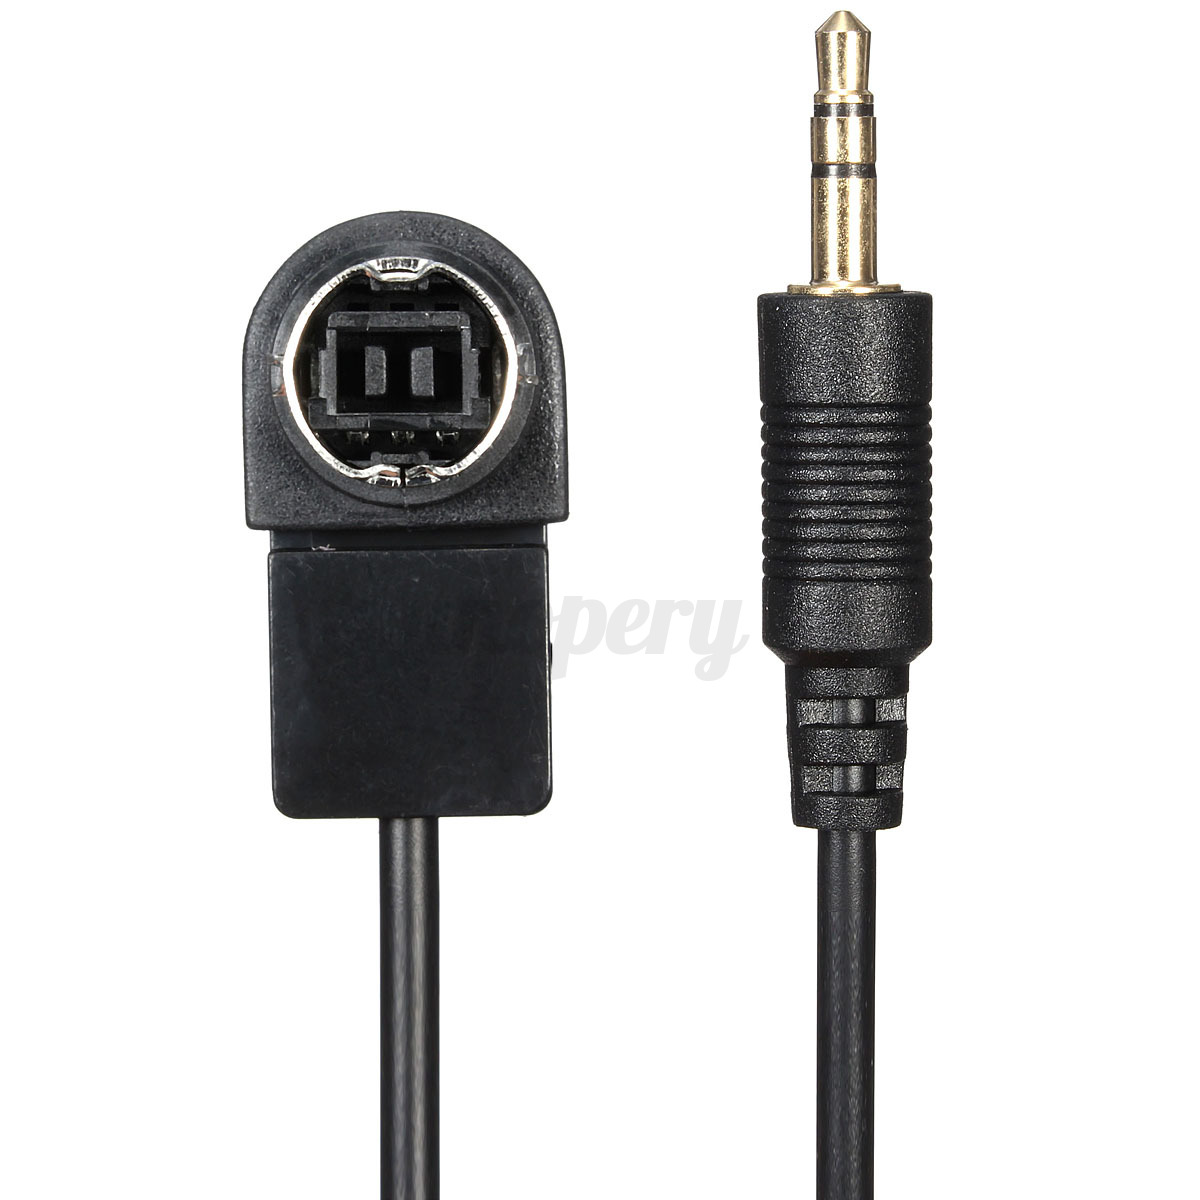 Ipod Mp3 3 5mm Car Interface Aux In Input In Adapter For: 3.5mm Aux Jack Input Converter Cable Adapter For Ipod